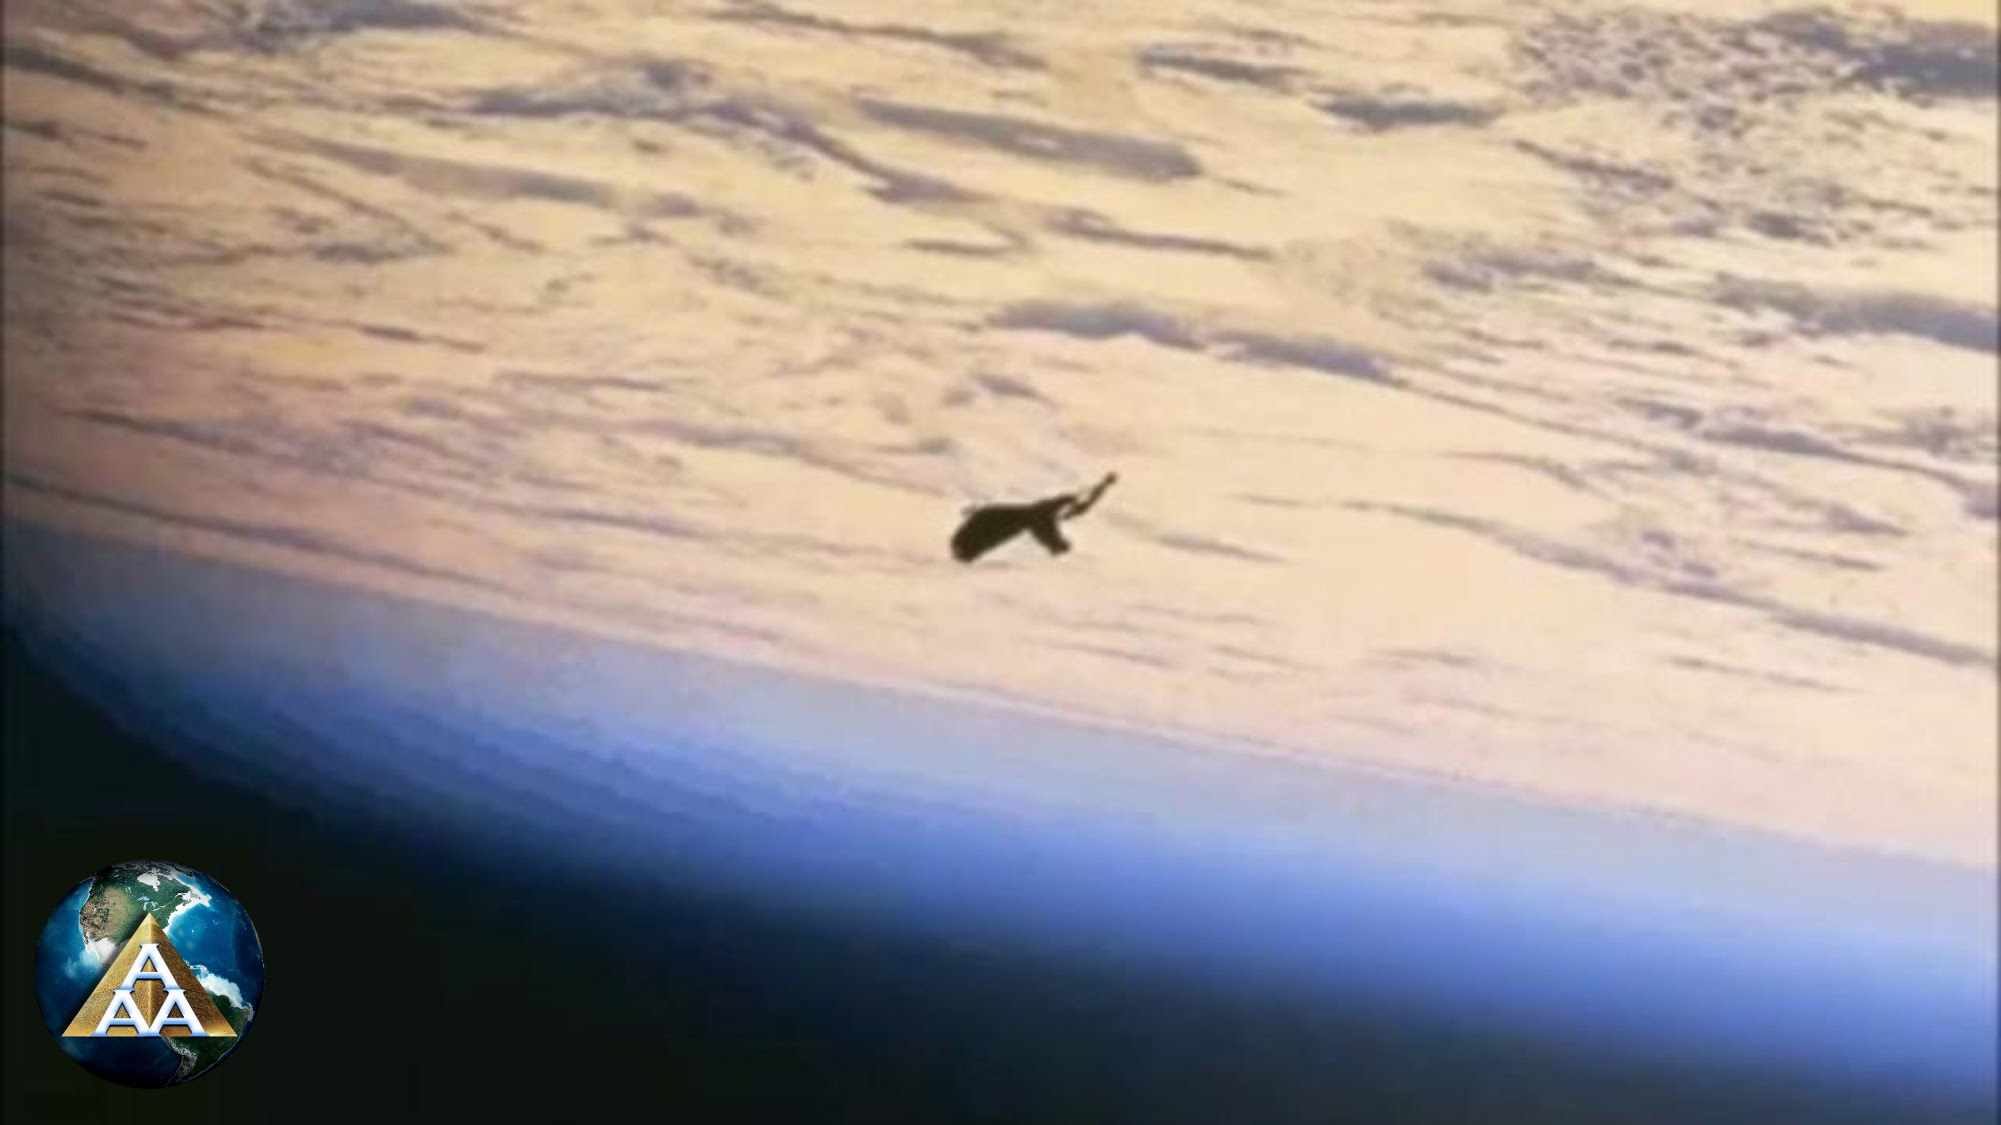 Black Knight Satellite Hijacked 169 Ancient Astronaut Archive